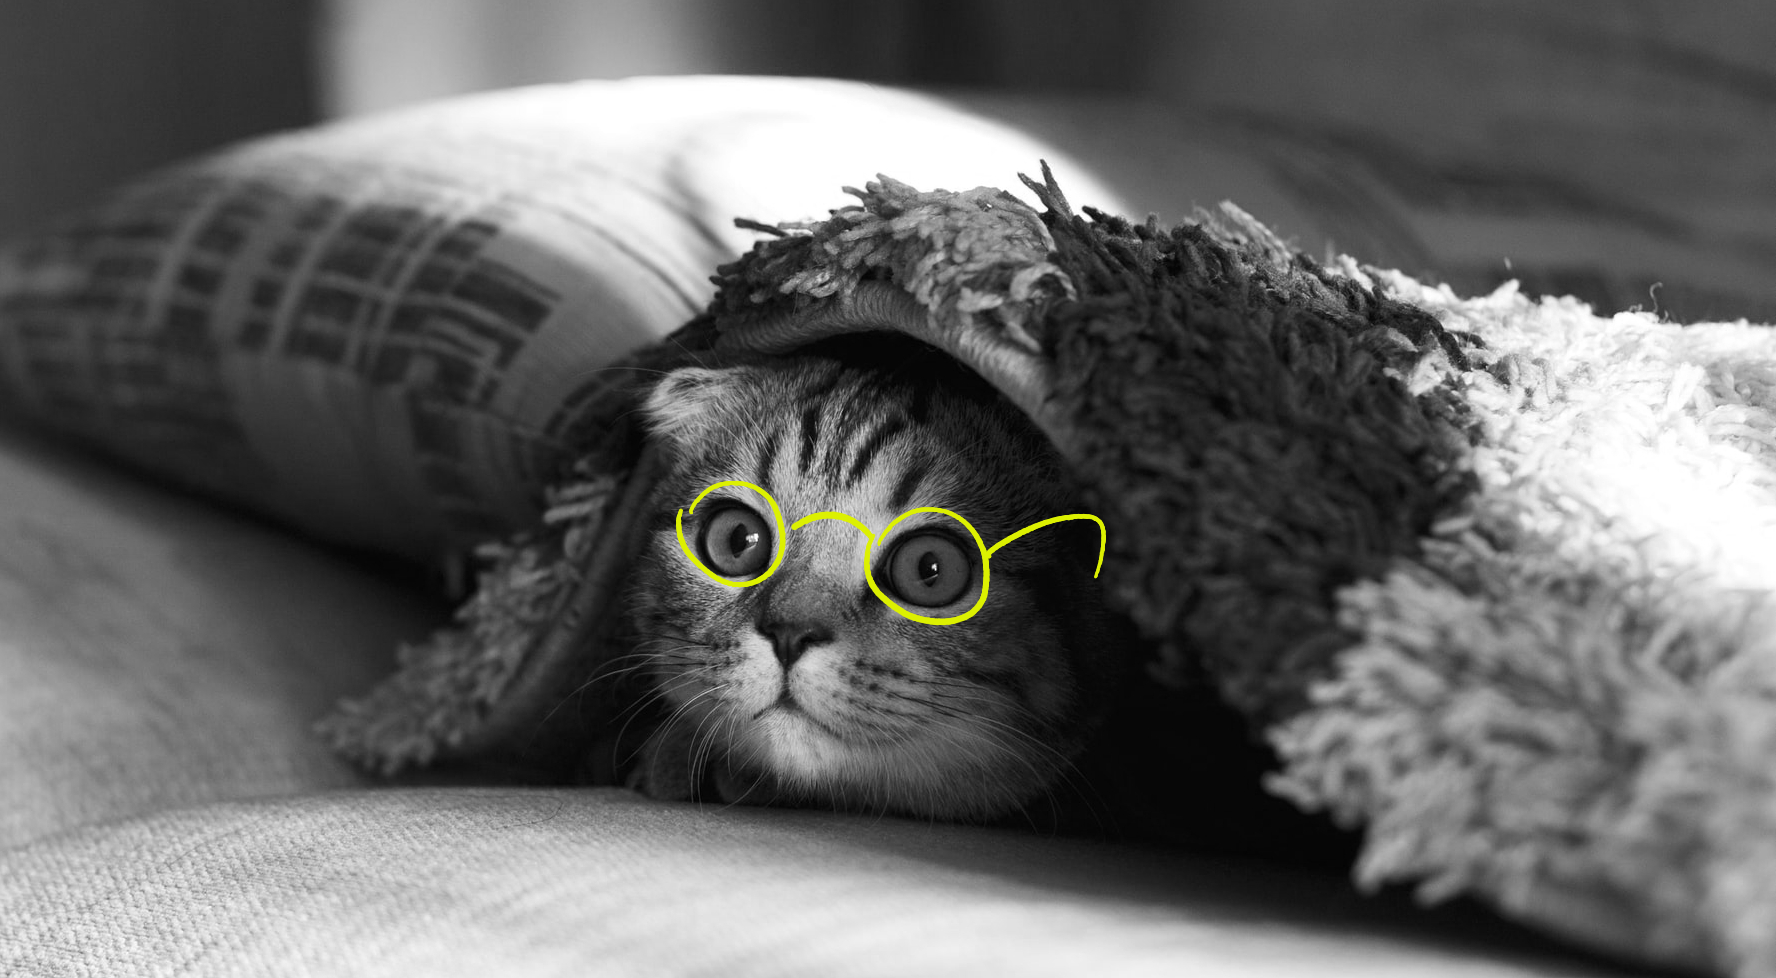 a cat wearing eyeglasses